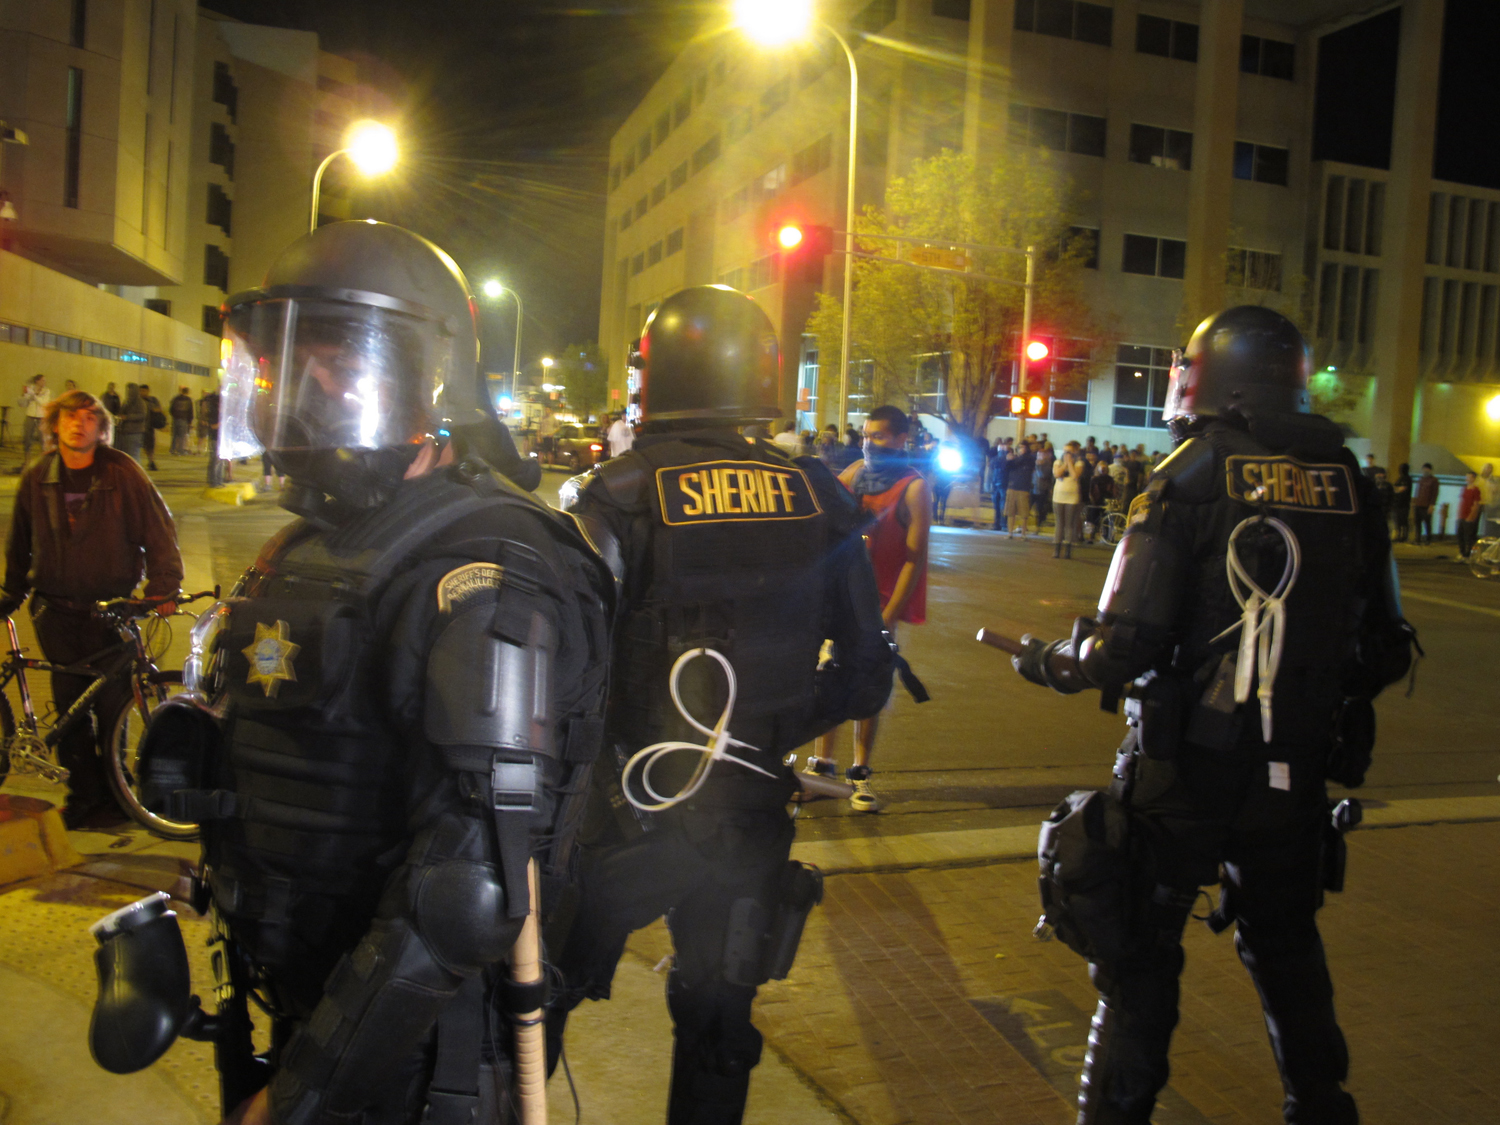 Riot police stand guard in front of protesters in downtown Albuquerque, N.M., Sunday, March 30,2014.